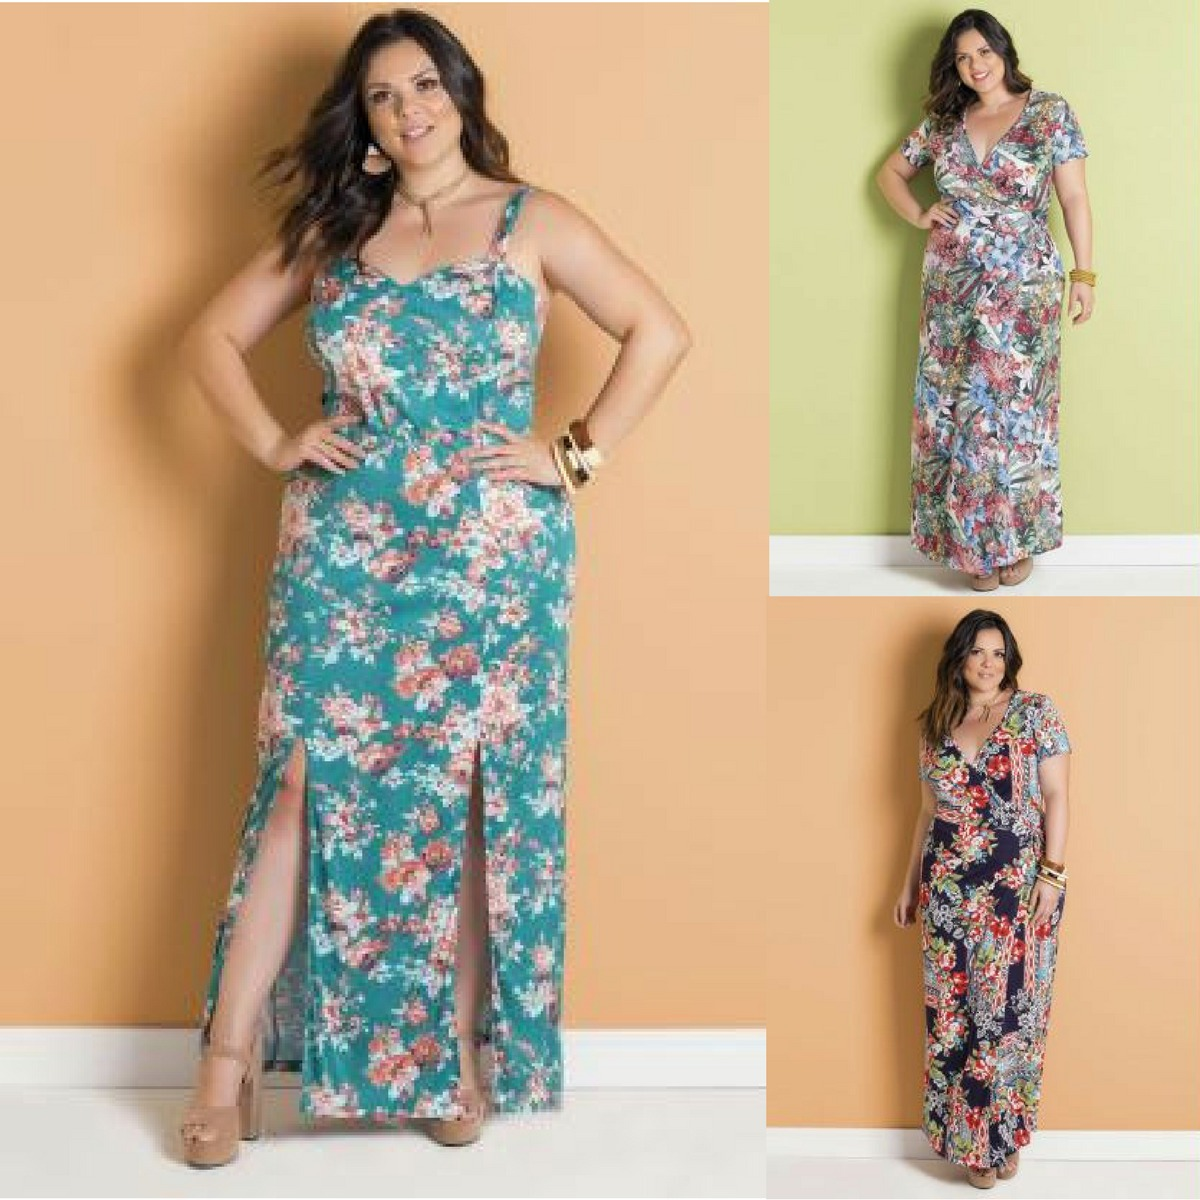 2b2640df9 vestido longo tropical floral com fendas estampado plus size. Carregando  zoom.